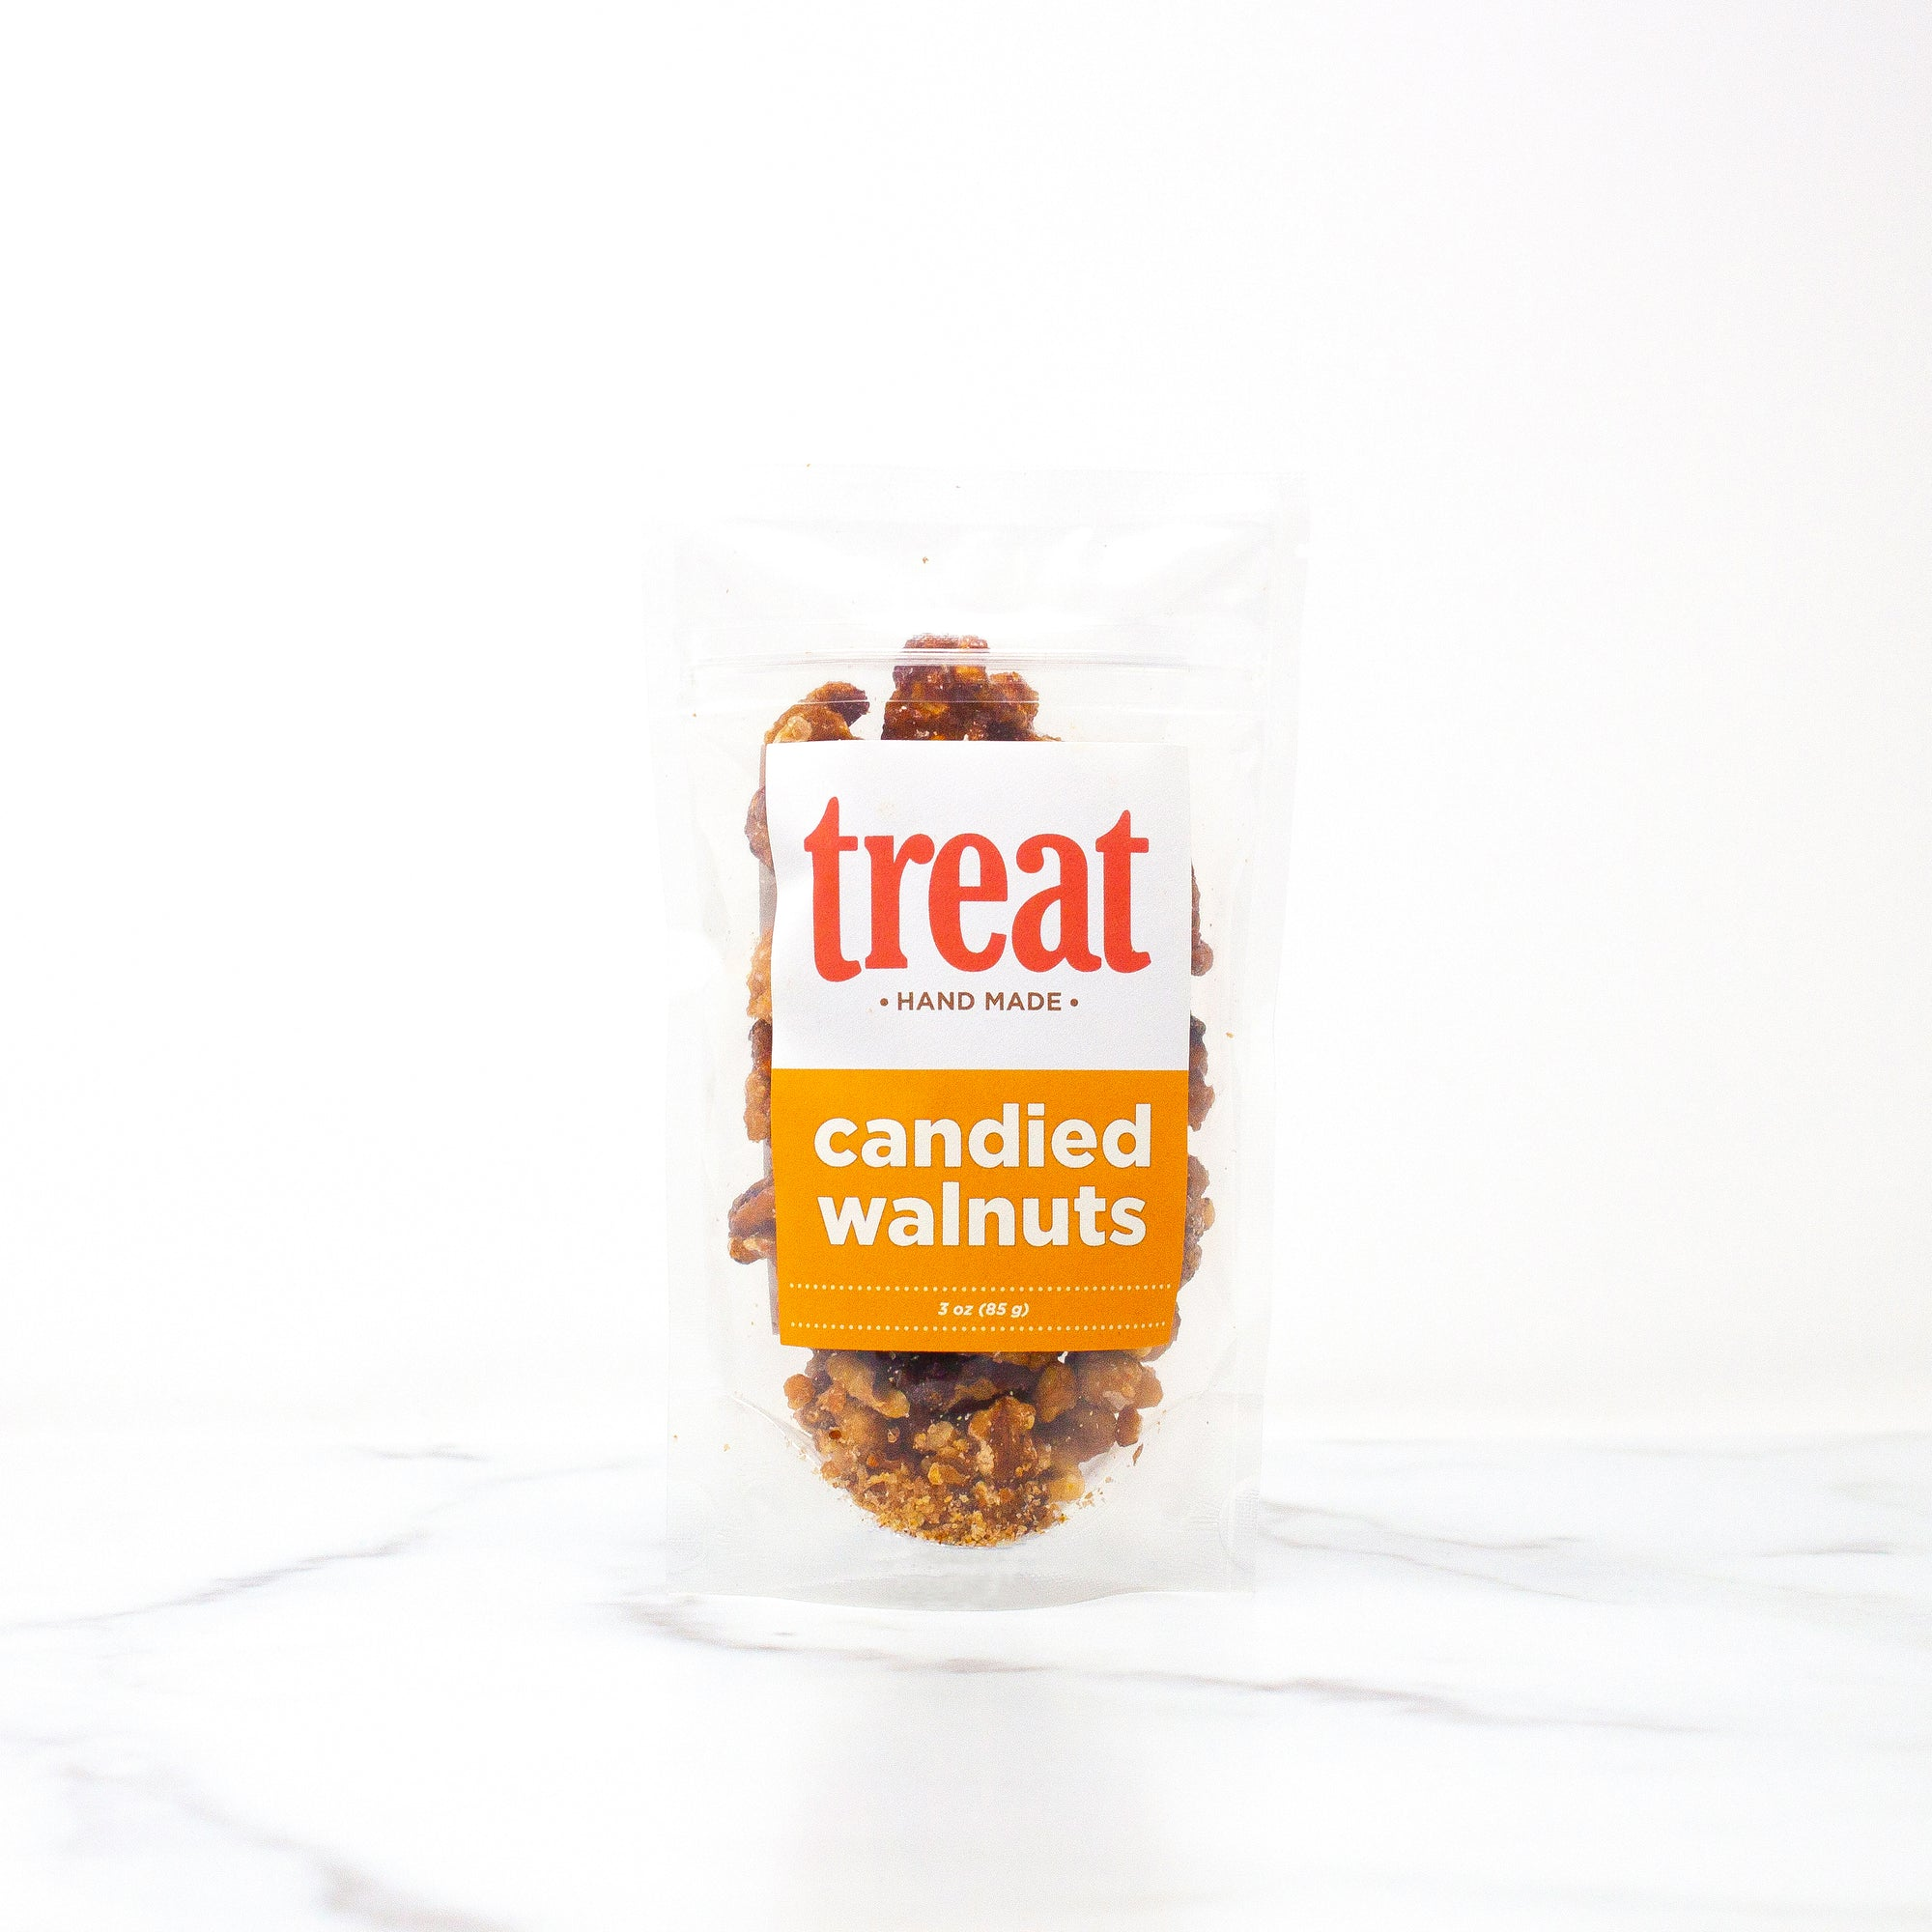 Enjoy this 3 oz bag of candied walnuts from Treat. Made in small batches, our gourmet candied walnuts explode with flavor and are the perfect gift for any season.